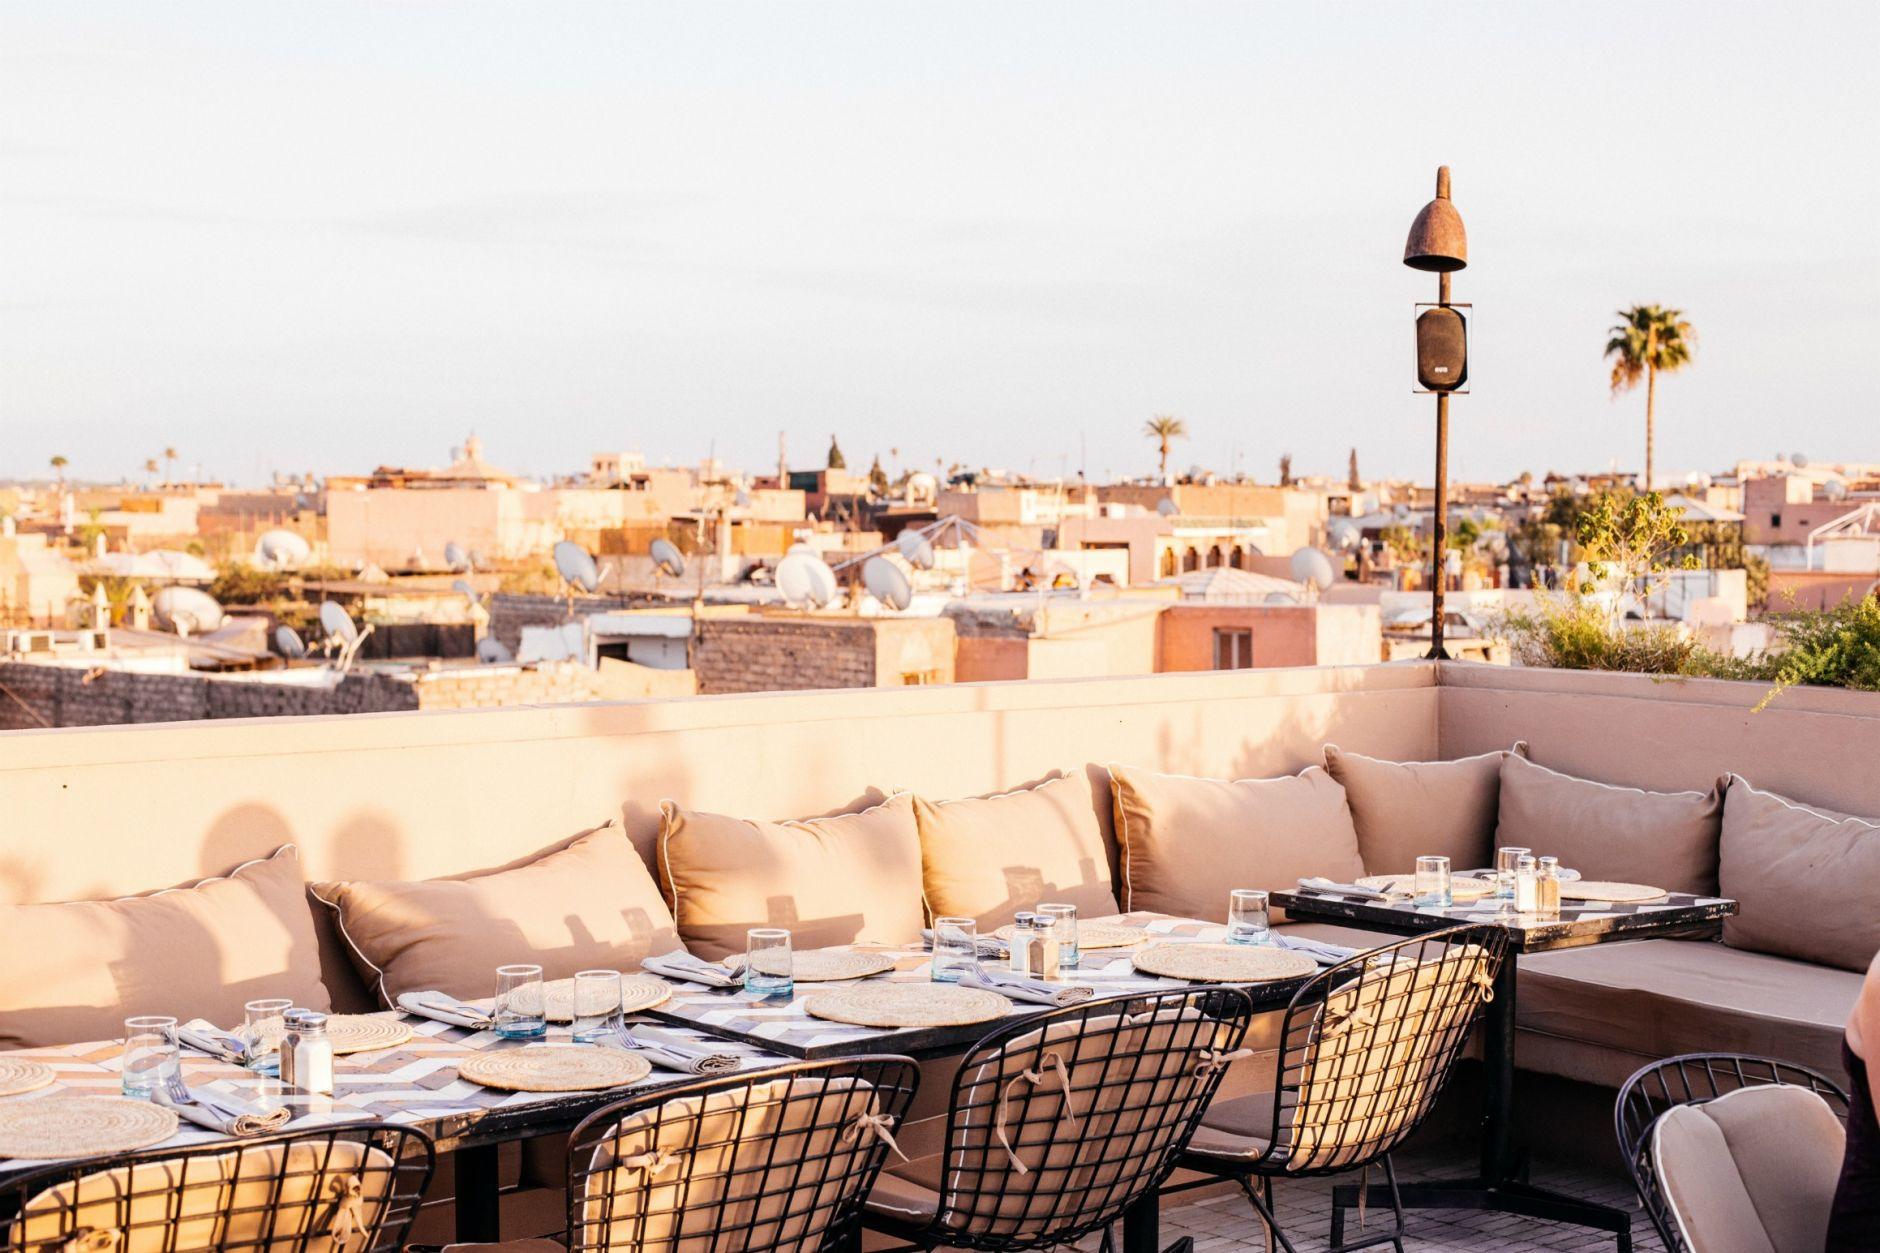 essential-tips-for-visiting-marrakech-morocco-disi-couture-12